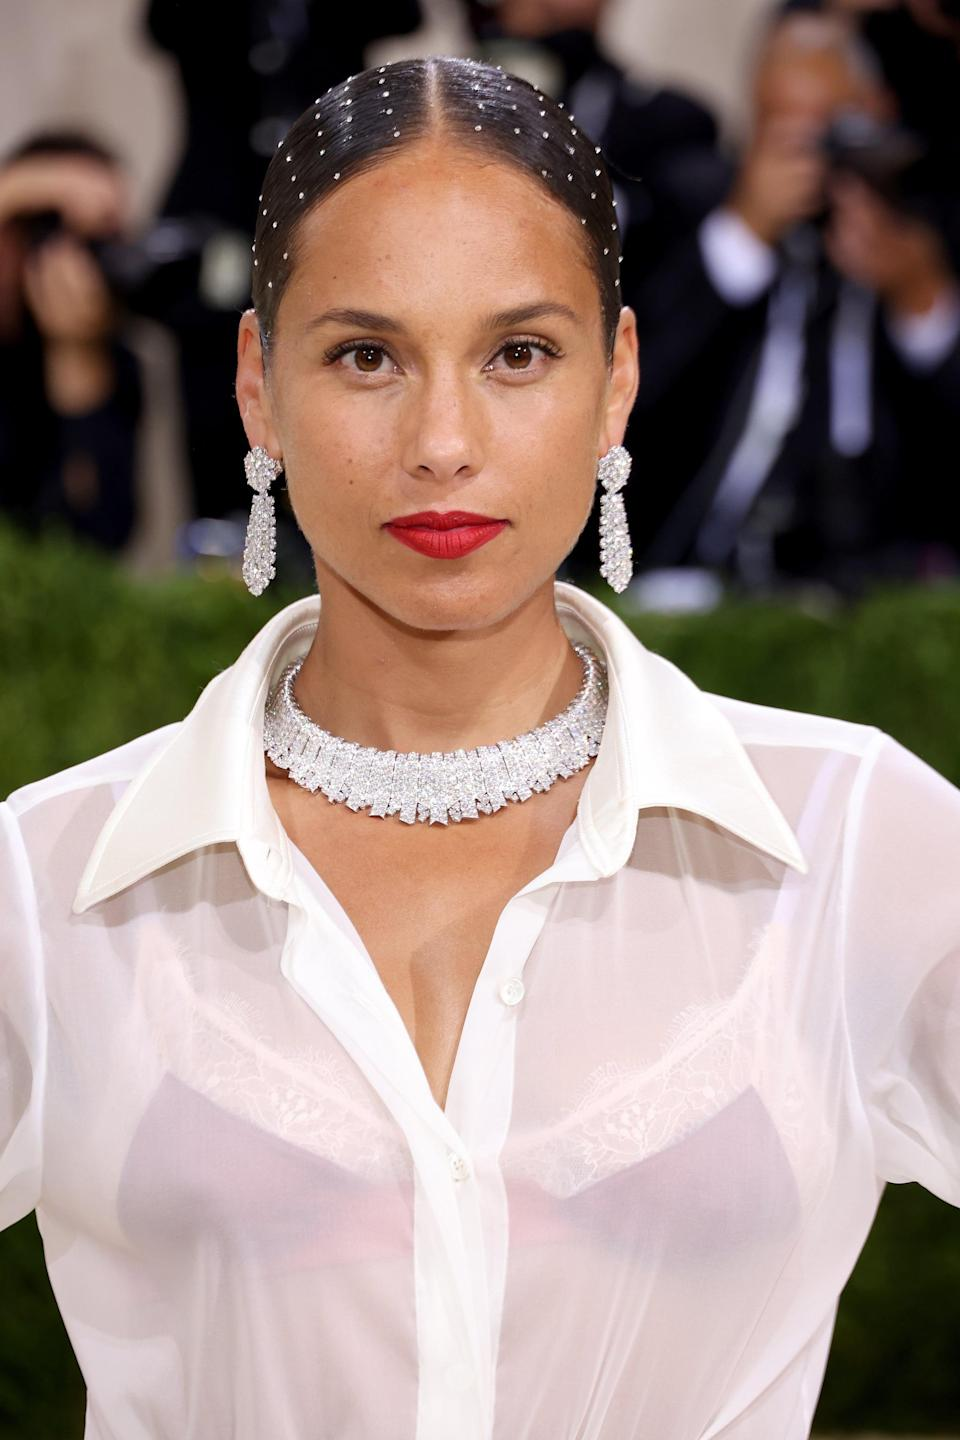 """<p><a class=""""link rapid-noclick-resp"""" href=""""https://www.popsugar.com/Alicia-Keys"""" rel=""""nofollow noopener"""" target=""""_blank"""" data-ylk=""""slk:Alicia Keys"""">Alicia Keys</a>'s 2021 Met Gala look fully made us want to embellish our entire head. Hairstylist and curl expert Nai'vasha worked with Keys to create this beautiful Swarovski crystal-encrusted chignon. """"A Royal ode to classic American glamour,"""" Nai'vasha <a href=""""https://www.instagram.com/p/CTyGWq0oseK/"""" class=""""link rapid-noclick-resp"""" rel=""""nofollow noopener"""" target=""""_blank"""" data-ylk=""""slk:captioned her Instagram post."""">captioned her Instagram post.</a></p>"""